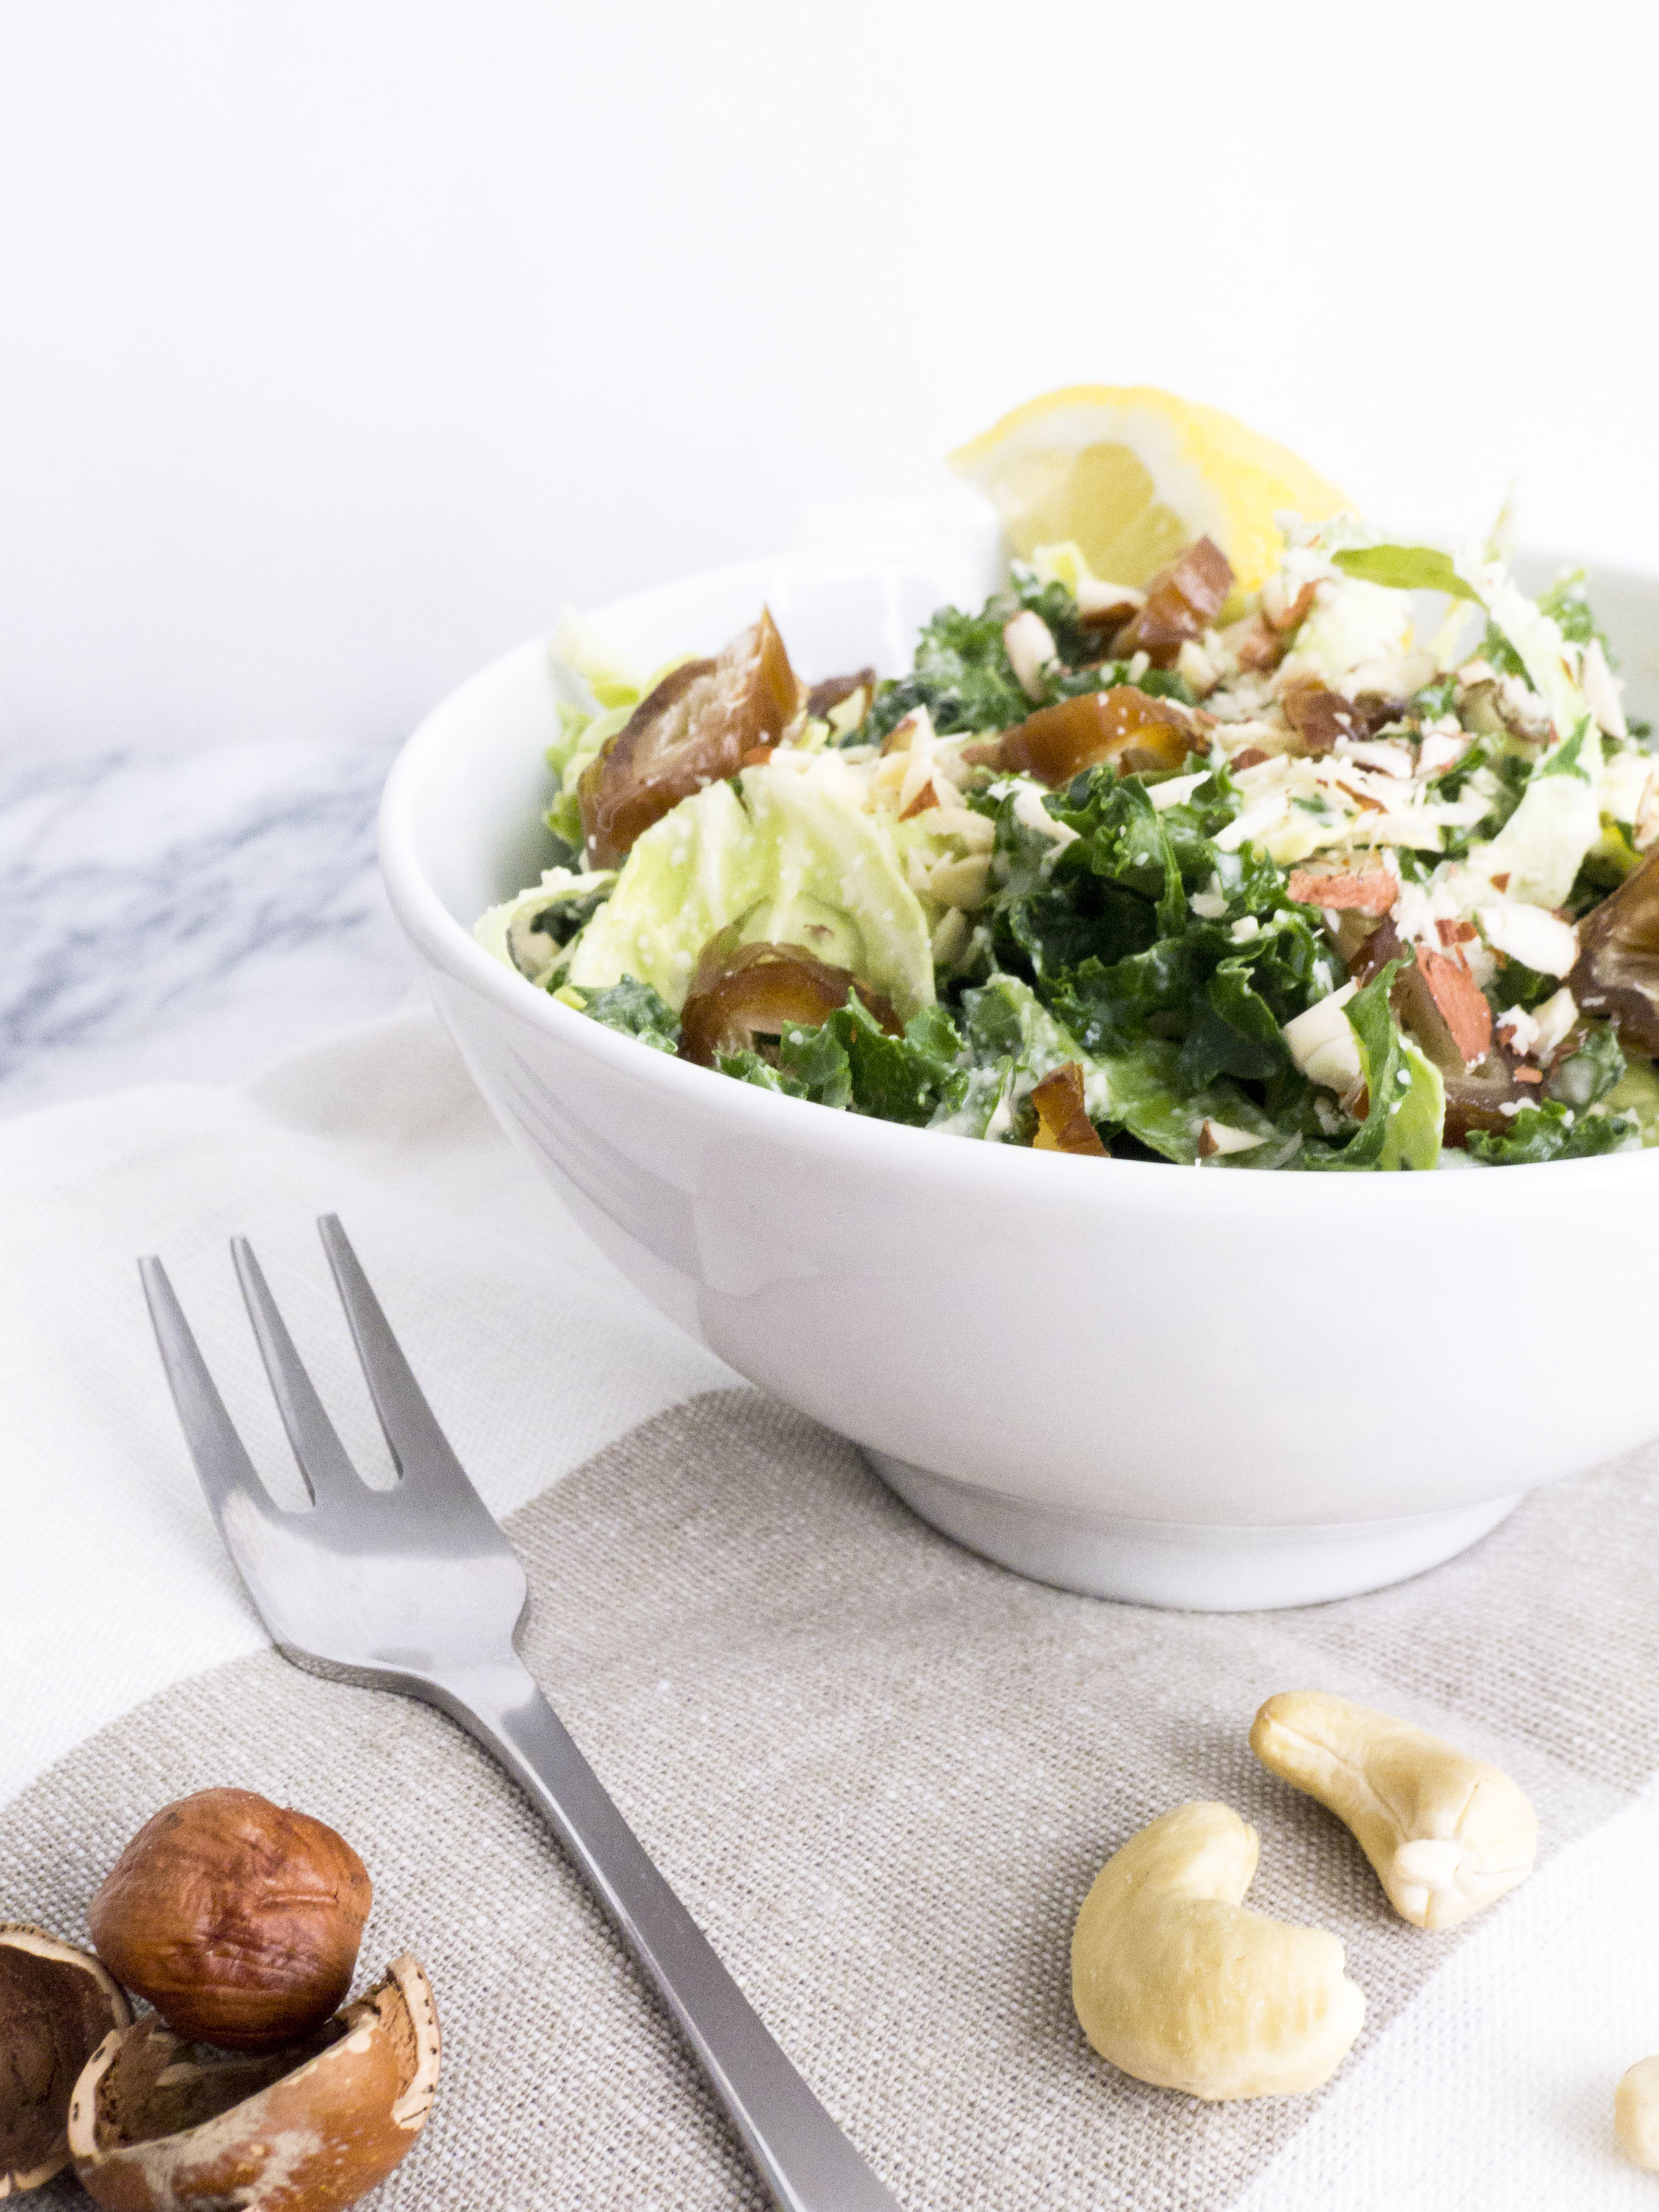 kale and shaved brussels sprout salad with cashew mayo, hazelnuts and dates